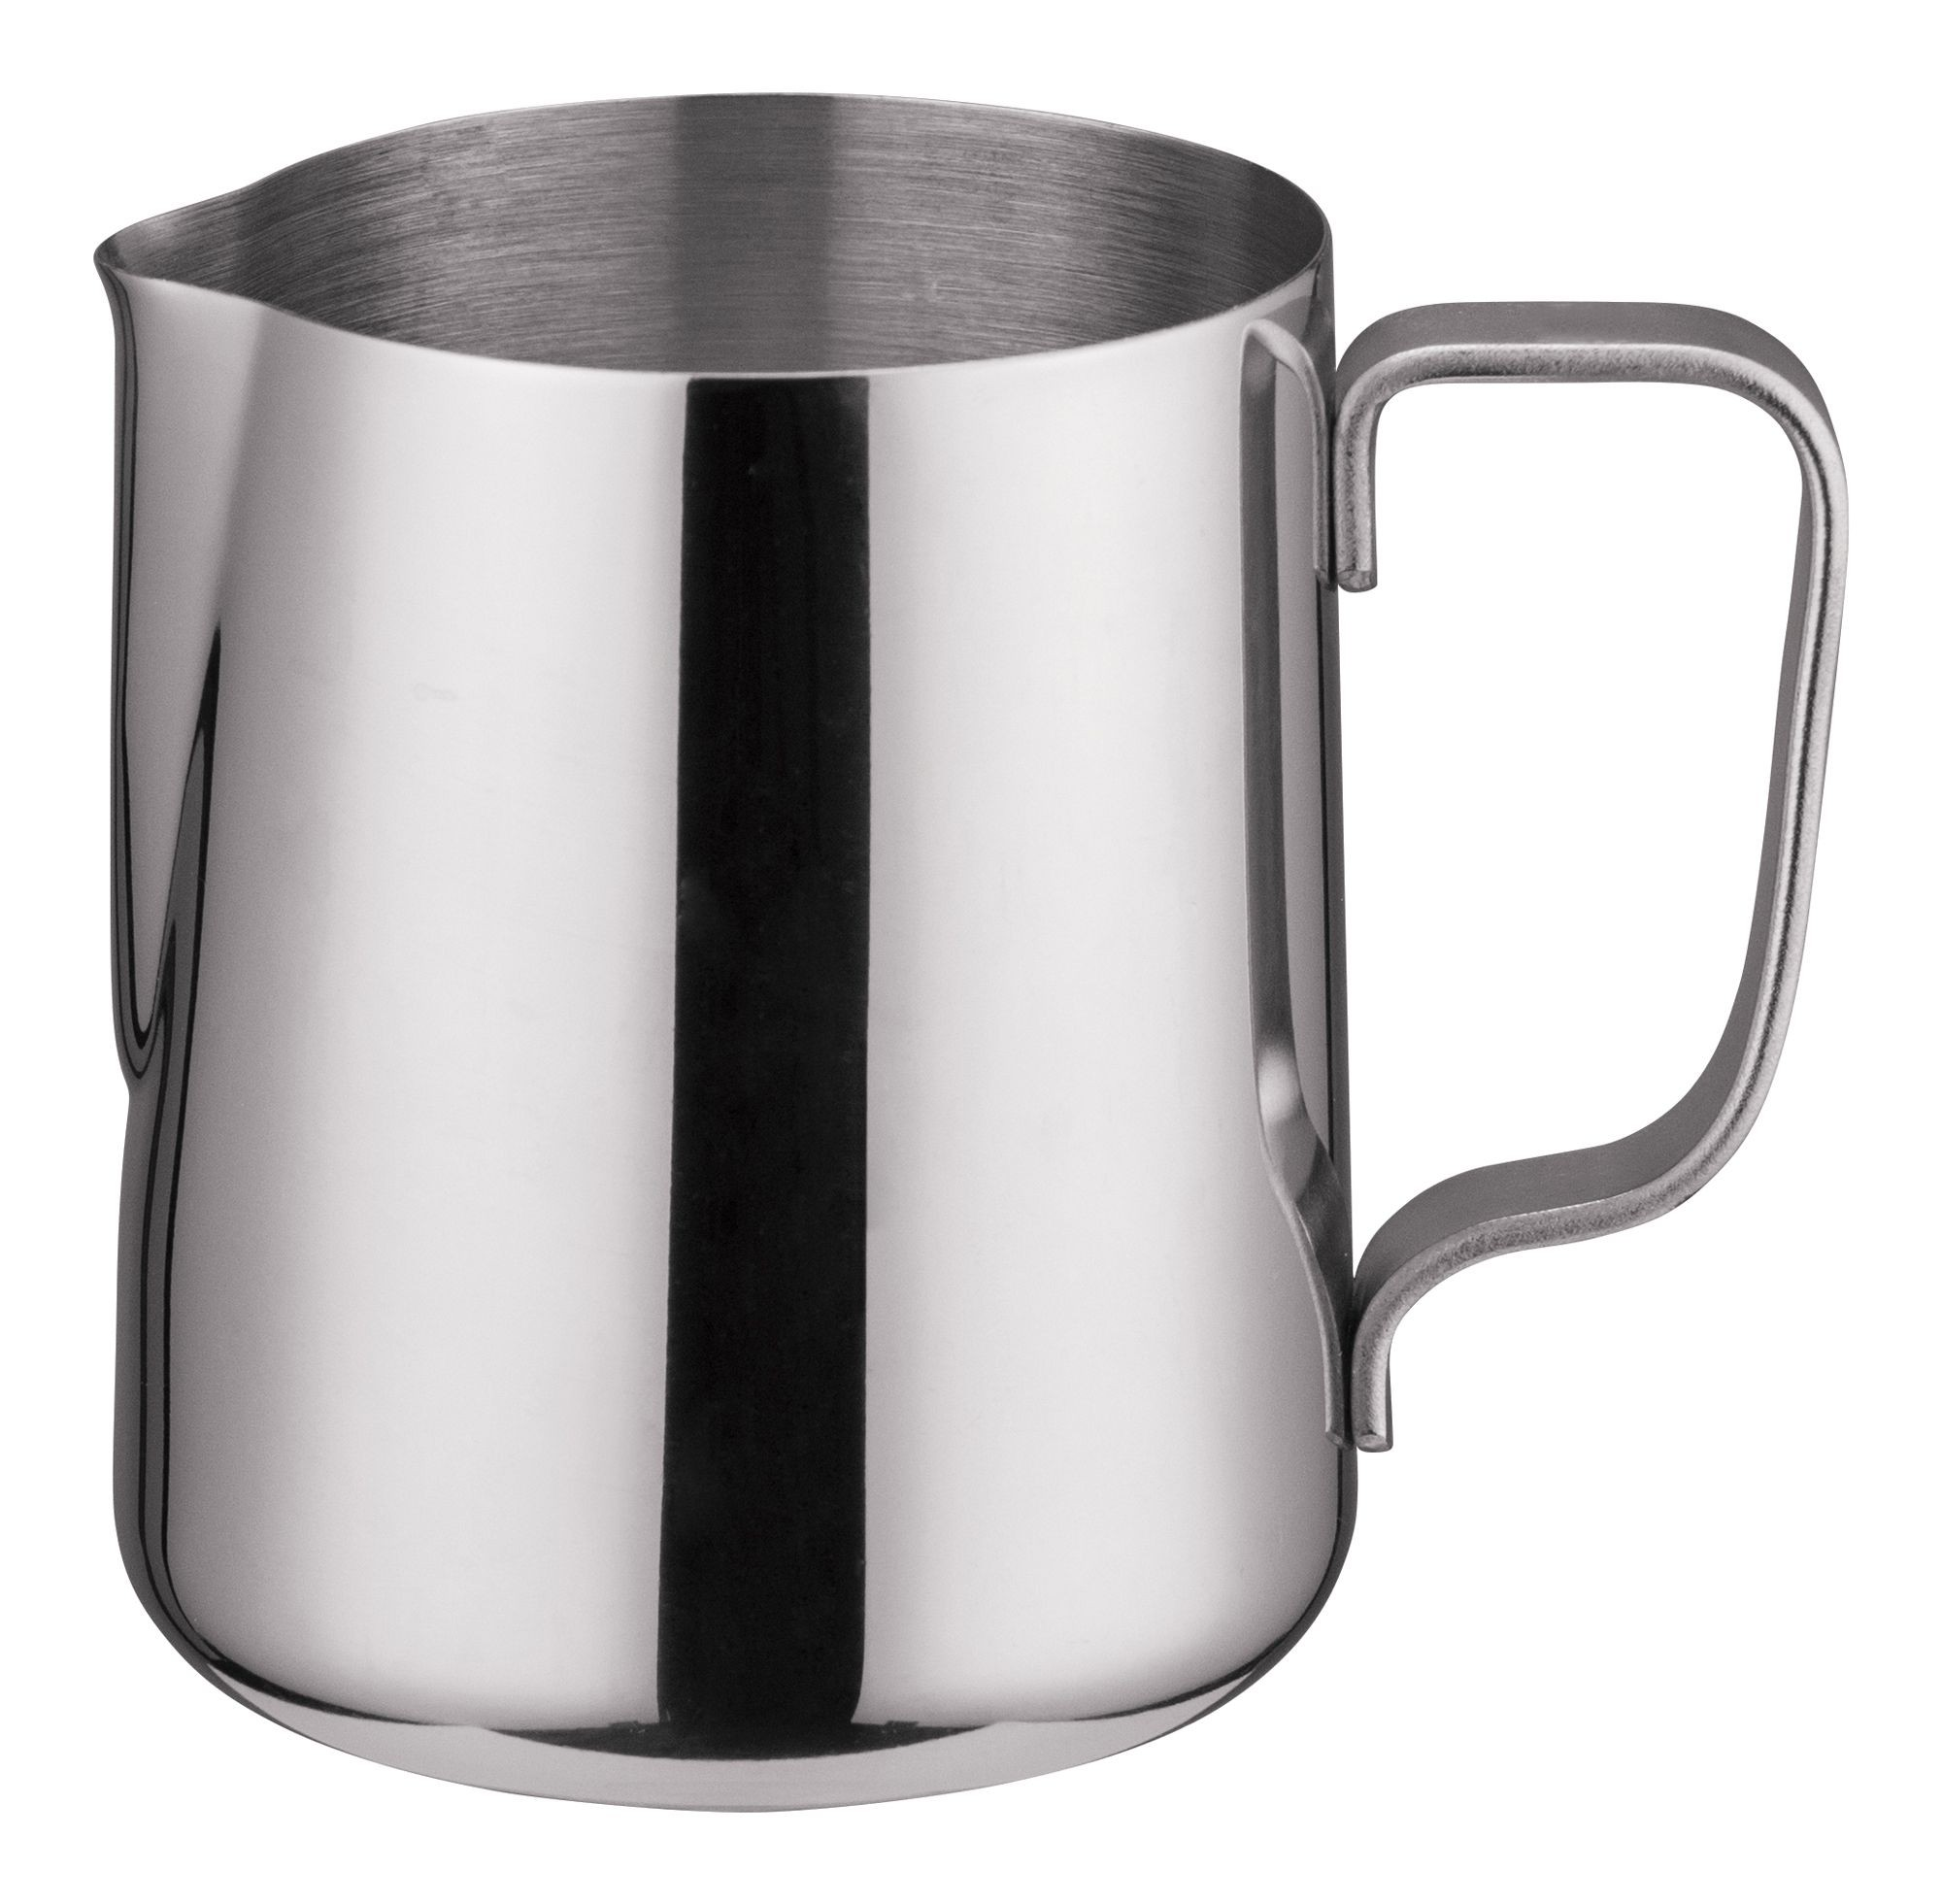 Stainless Steel 20 Oz. Water Pitcher